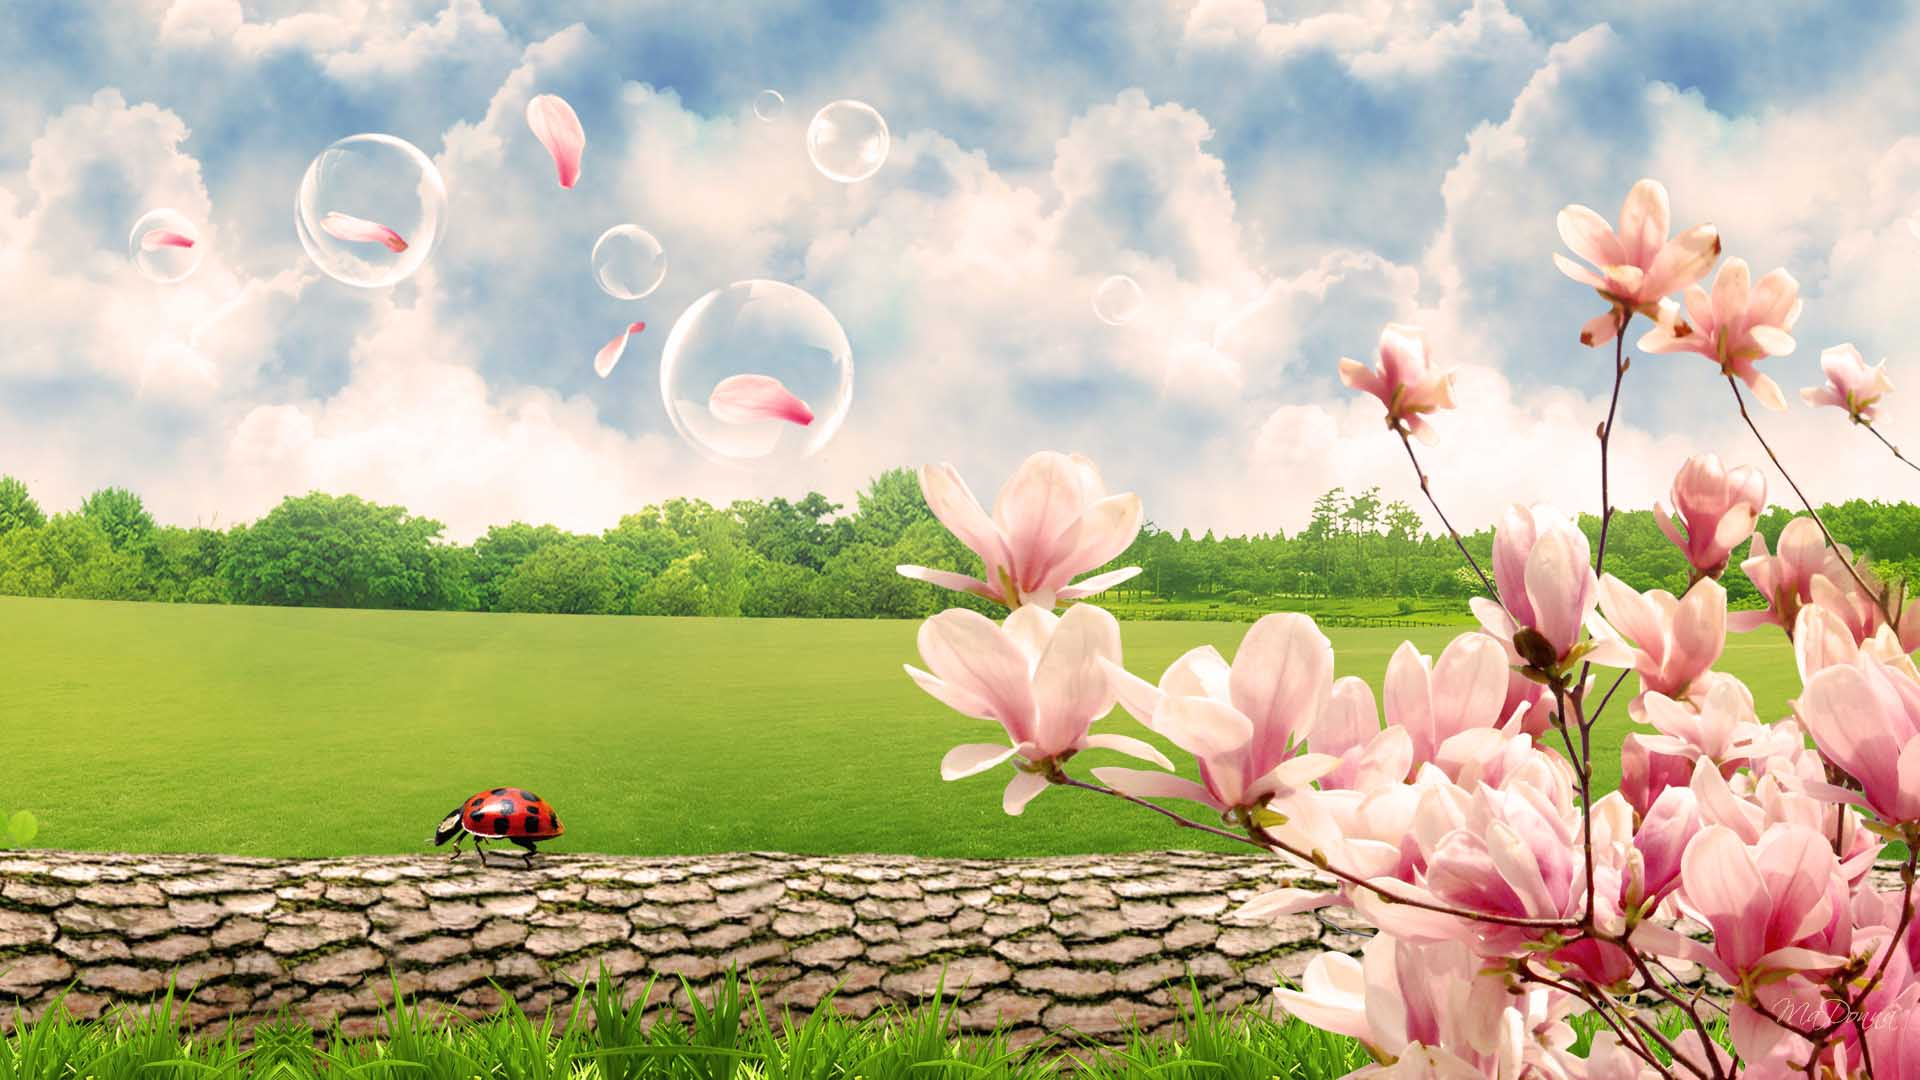 spring natural scenery hd - photo #44